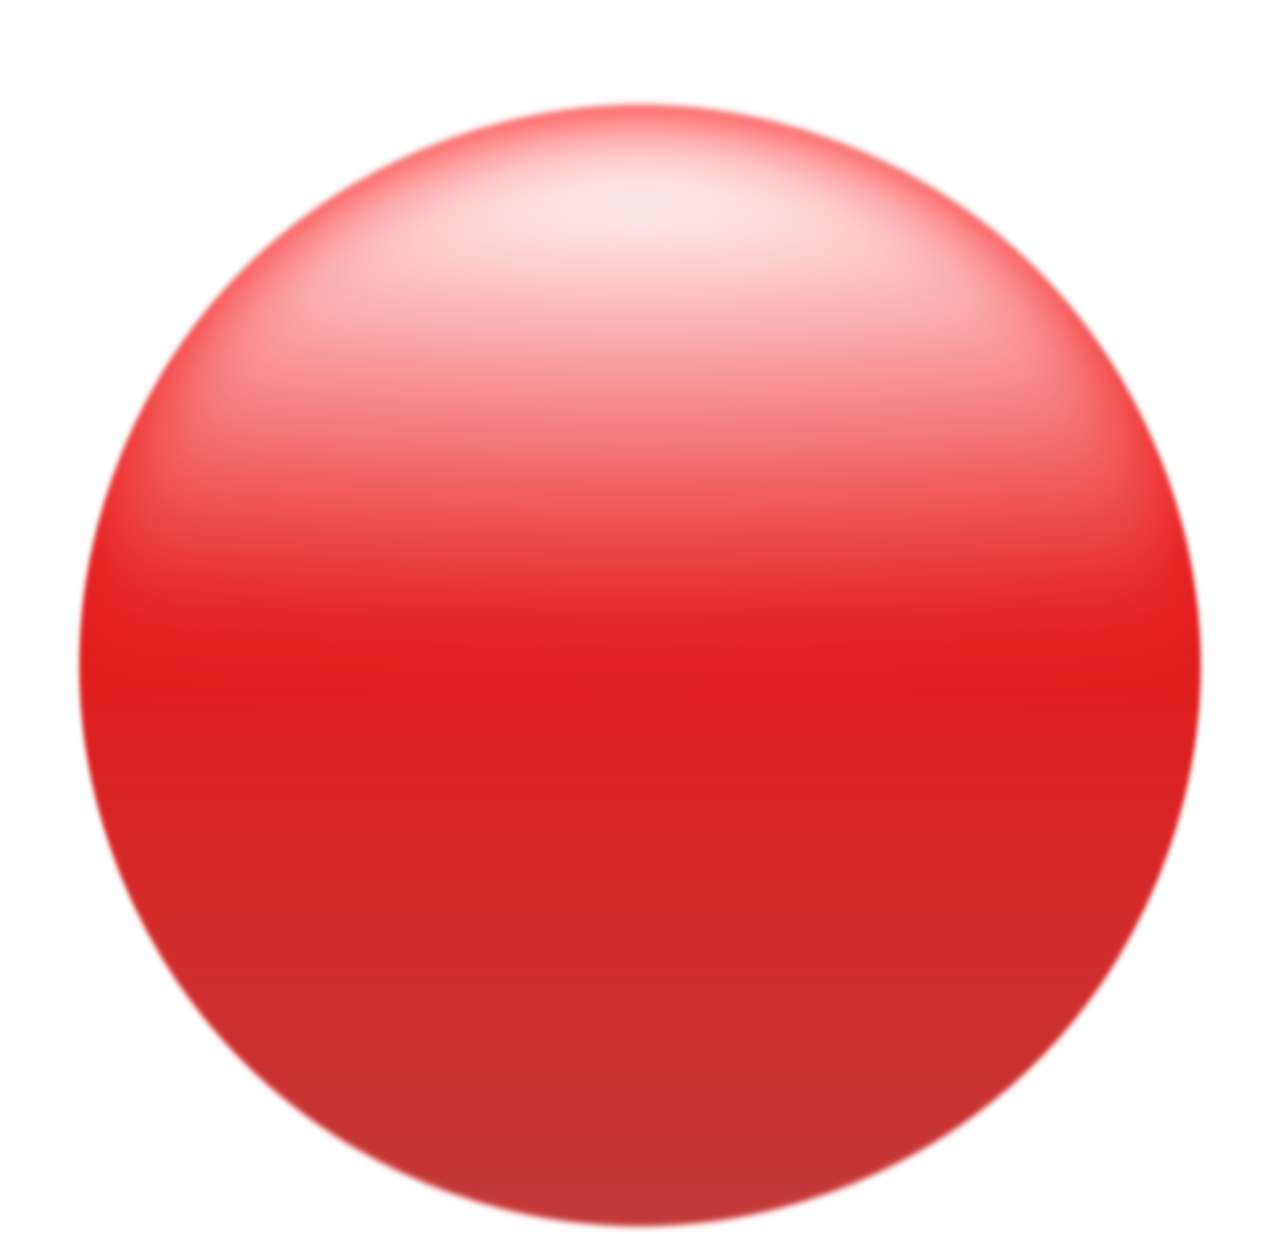 The red rubber ball theory of church growth.